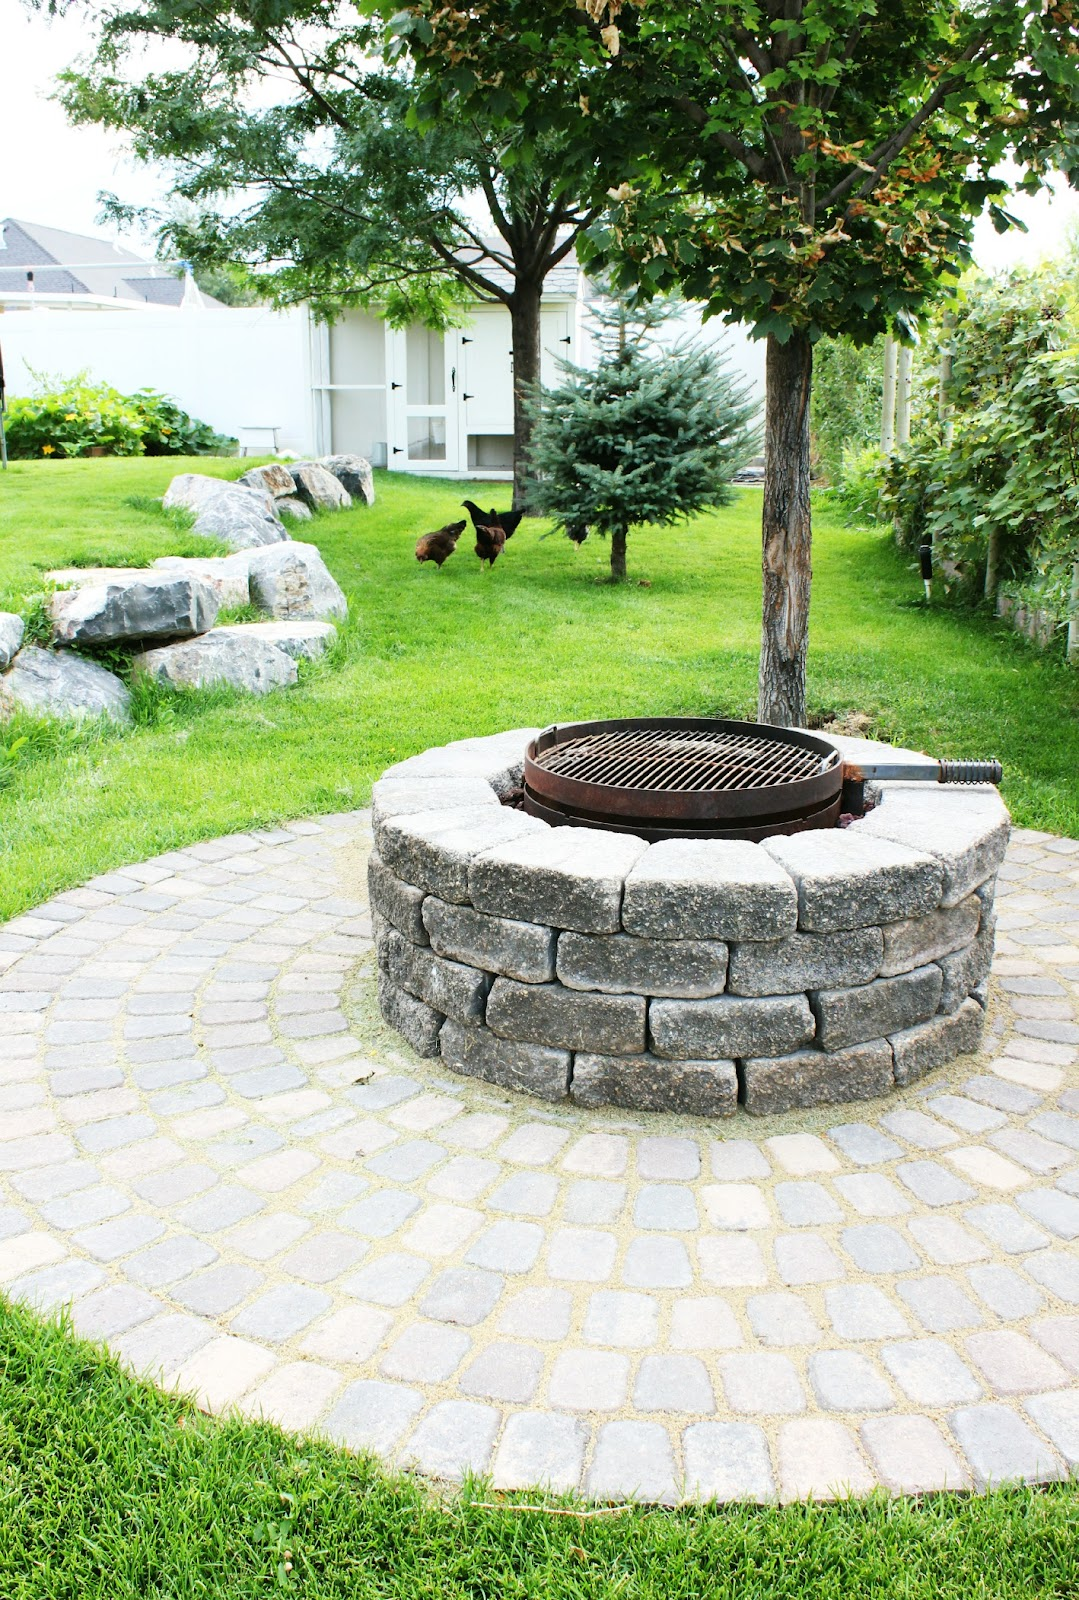 Outdoor Fire Pit On Grass